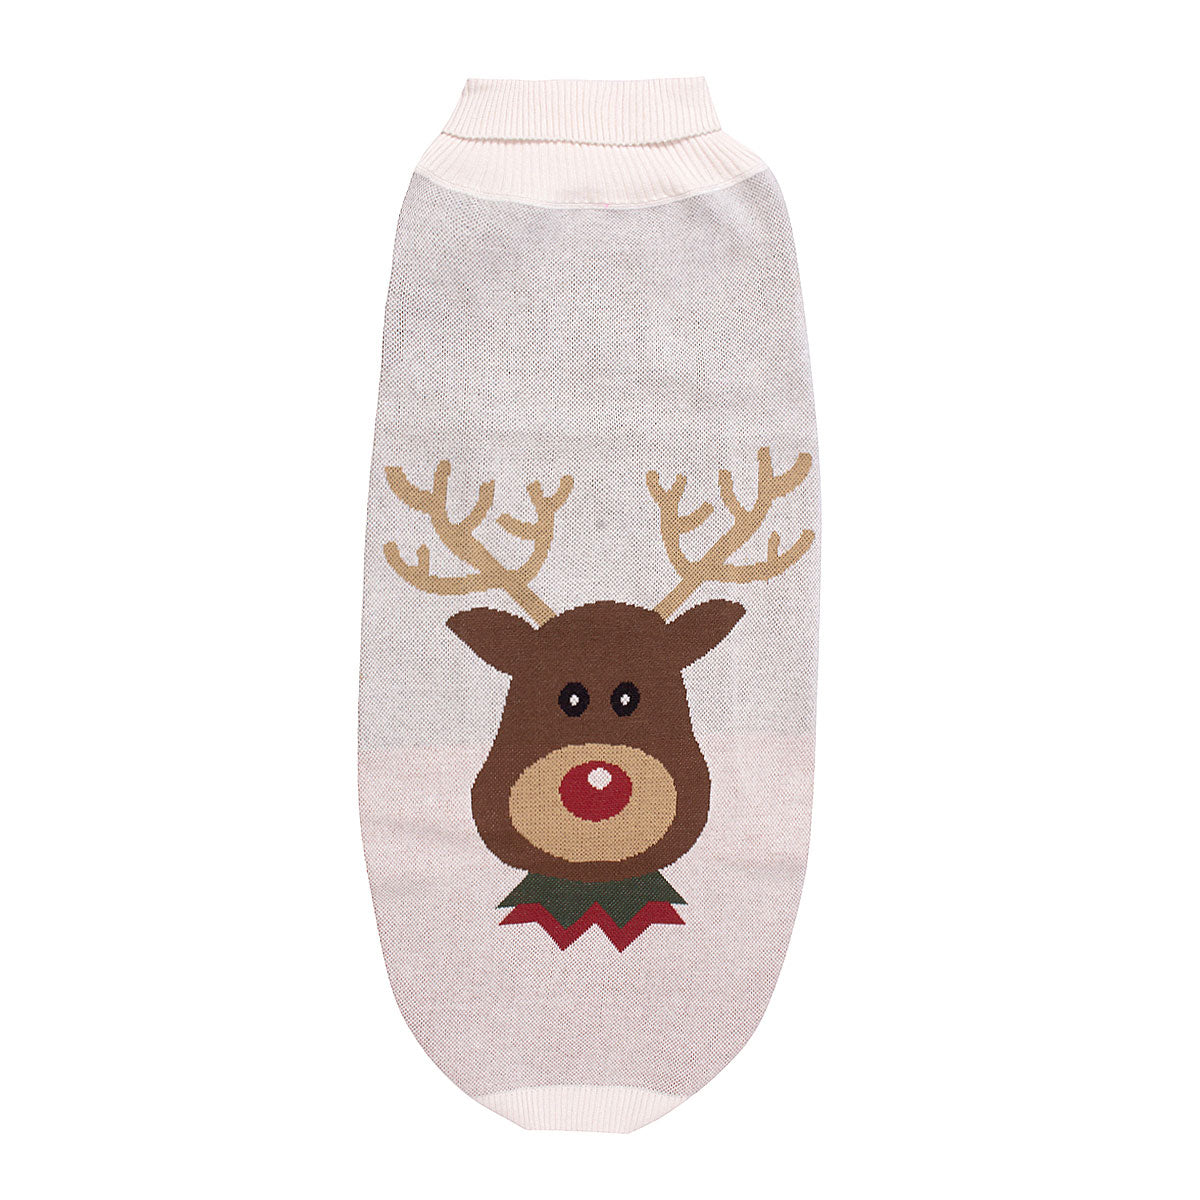 Halo Reindeer Dog Sweater - Halo - Breeches.com